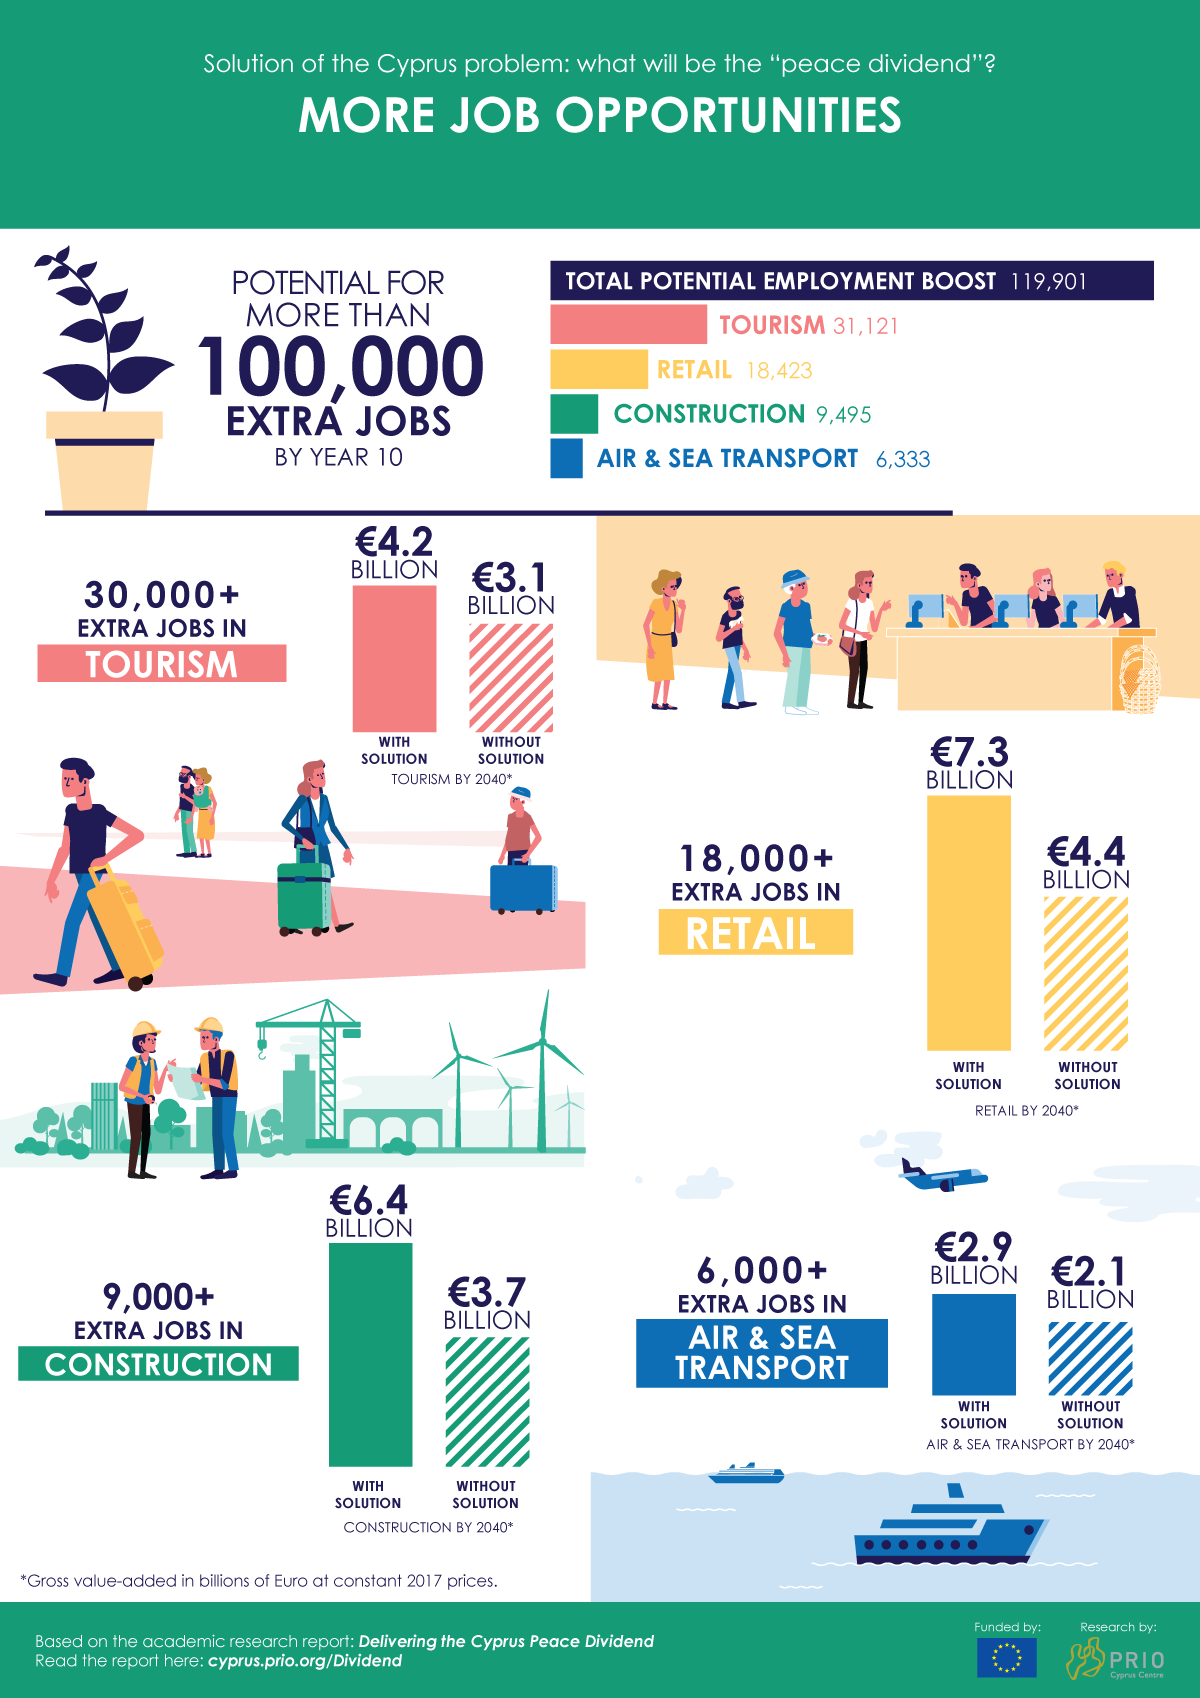 Prio_cyprus Peace Dividend_oh animations_infogrpahics_002